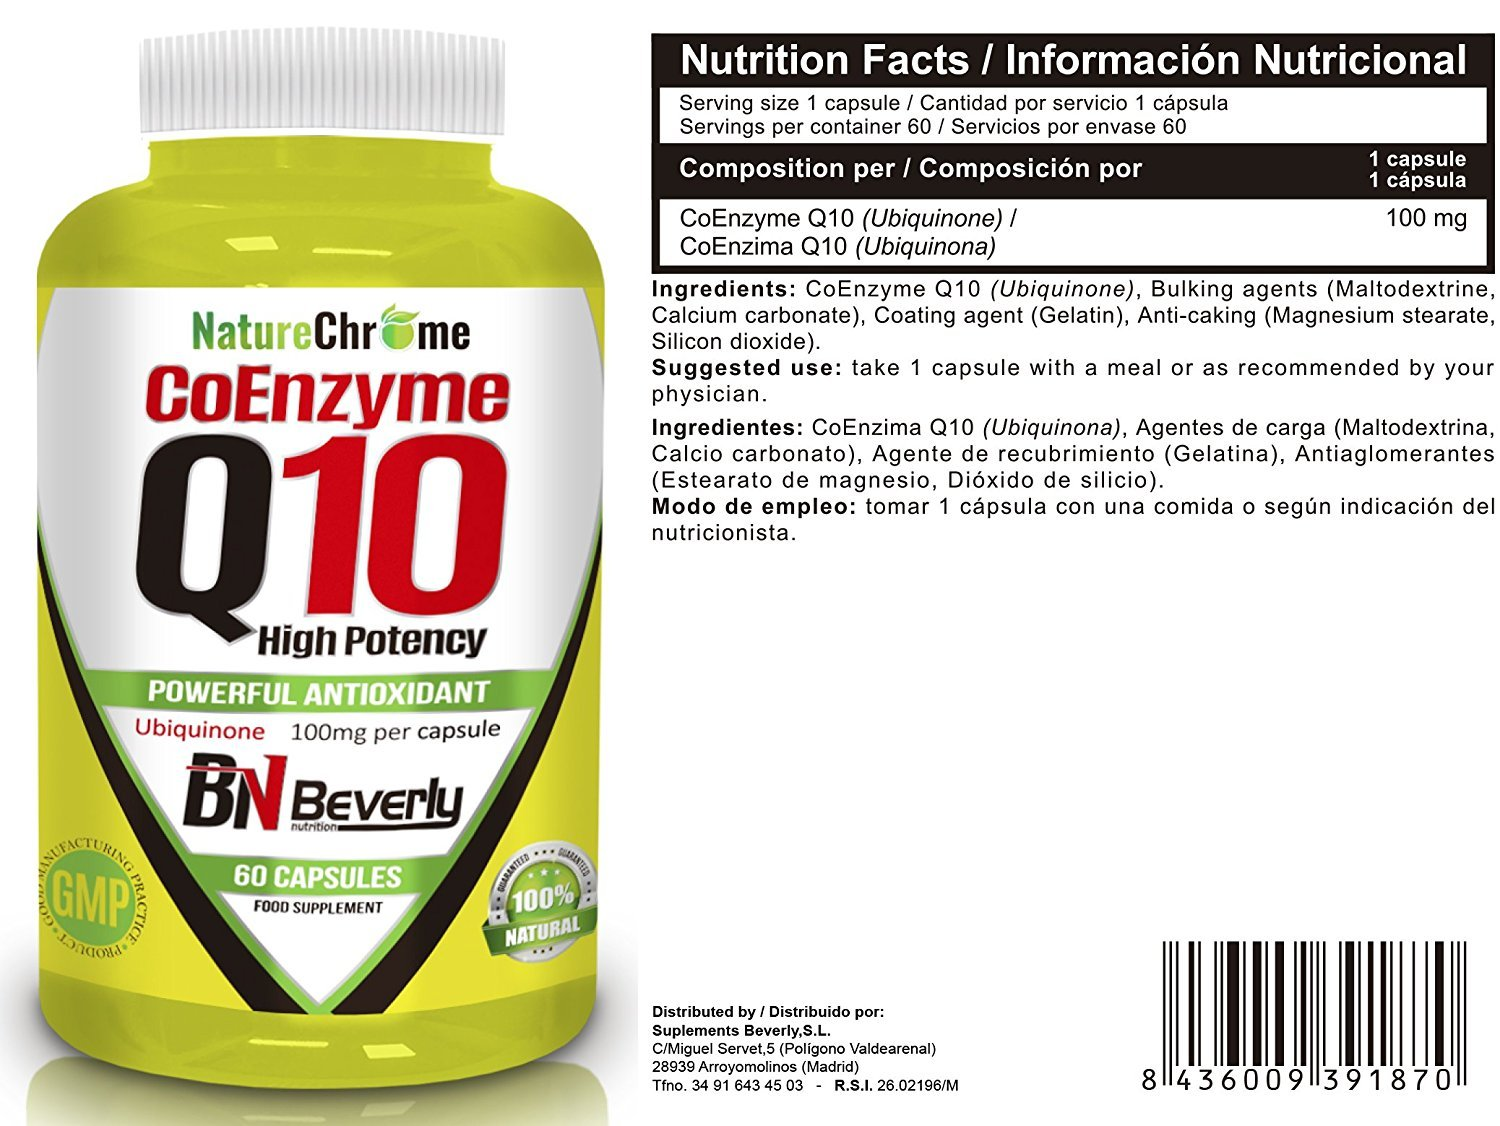 Amazon.com: Beverly Nutrition Exclusive For Absat40 Coenzyme Q10 - Improve Sports Performance - Provides Strong Antioxidant & Support Immune System ...